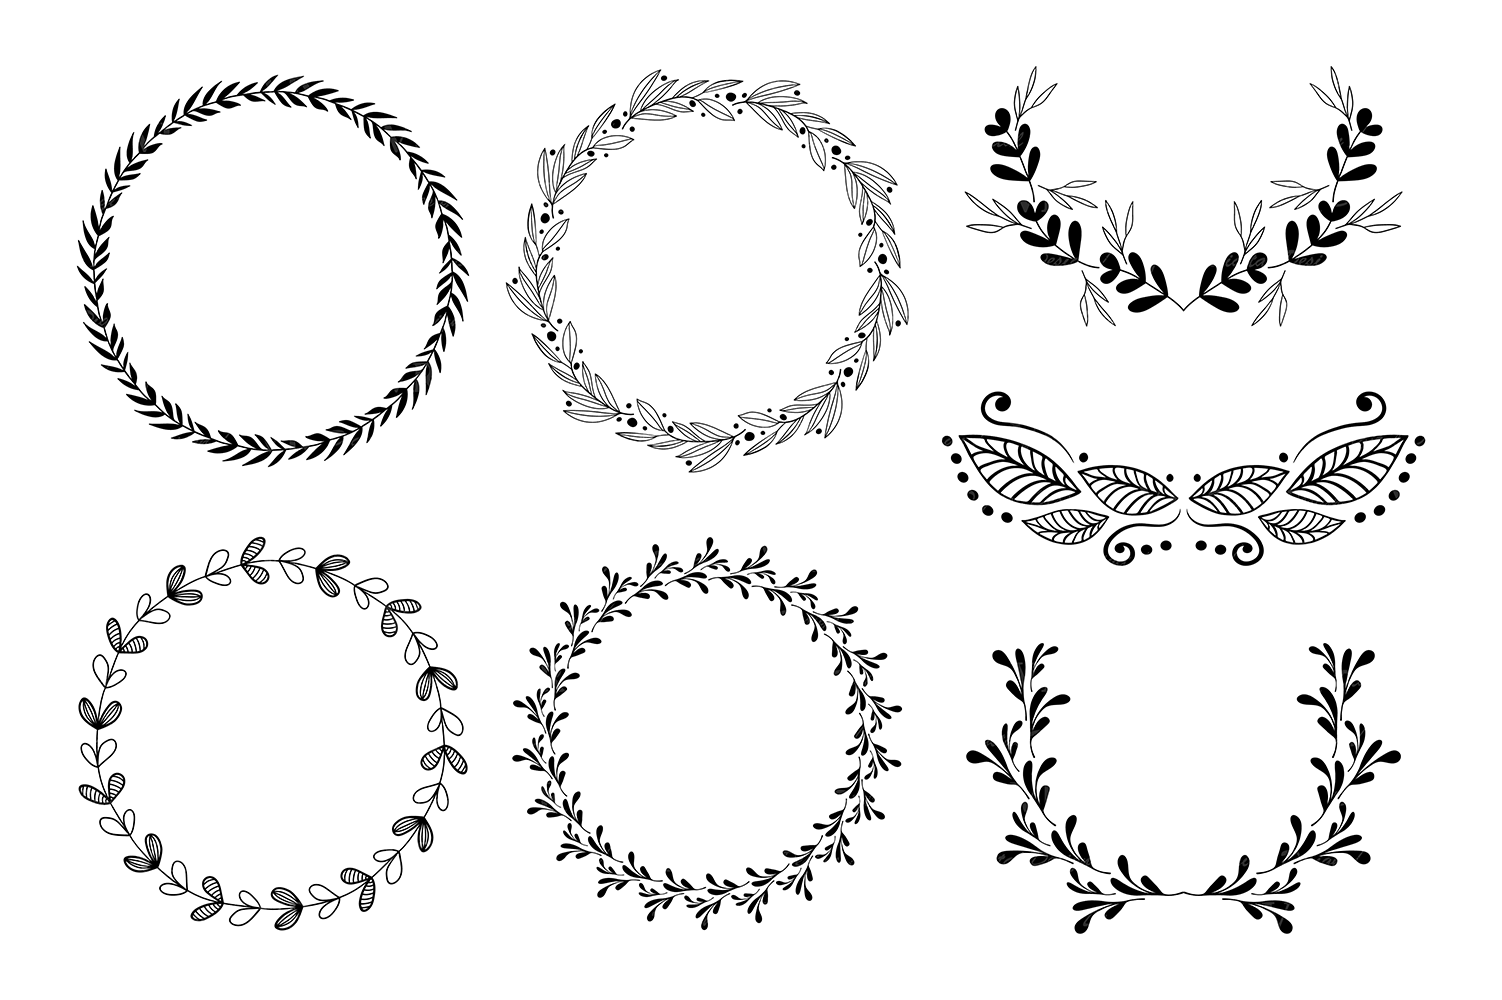 hight resolution of wreaths clipart hand drawn black design elements digital wreath laurels leaves and branches wedding clipart vector